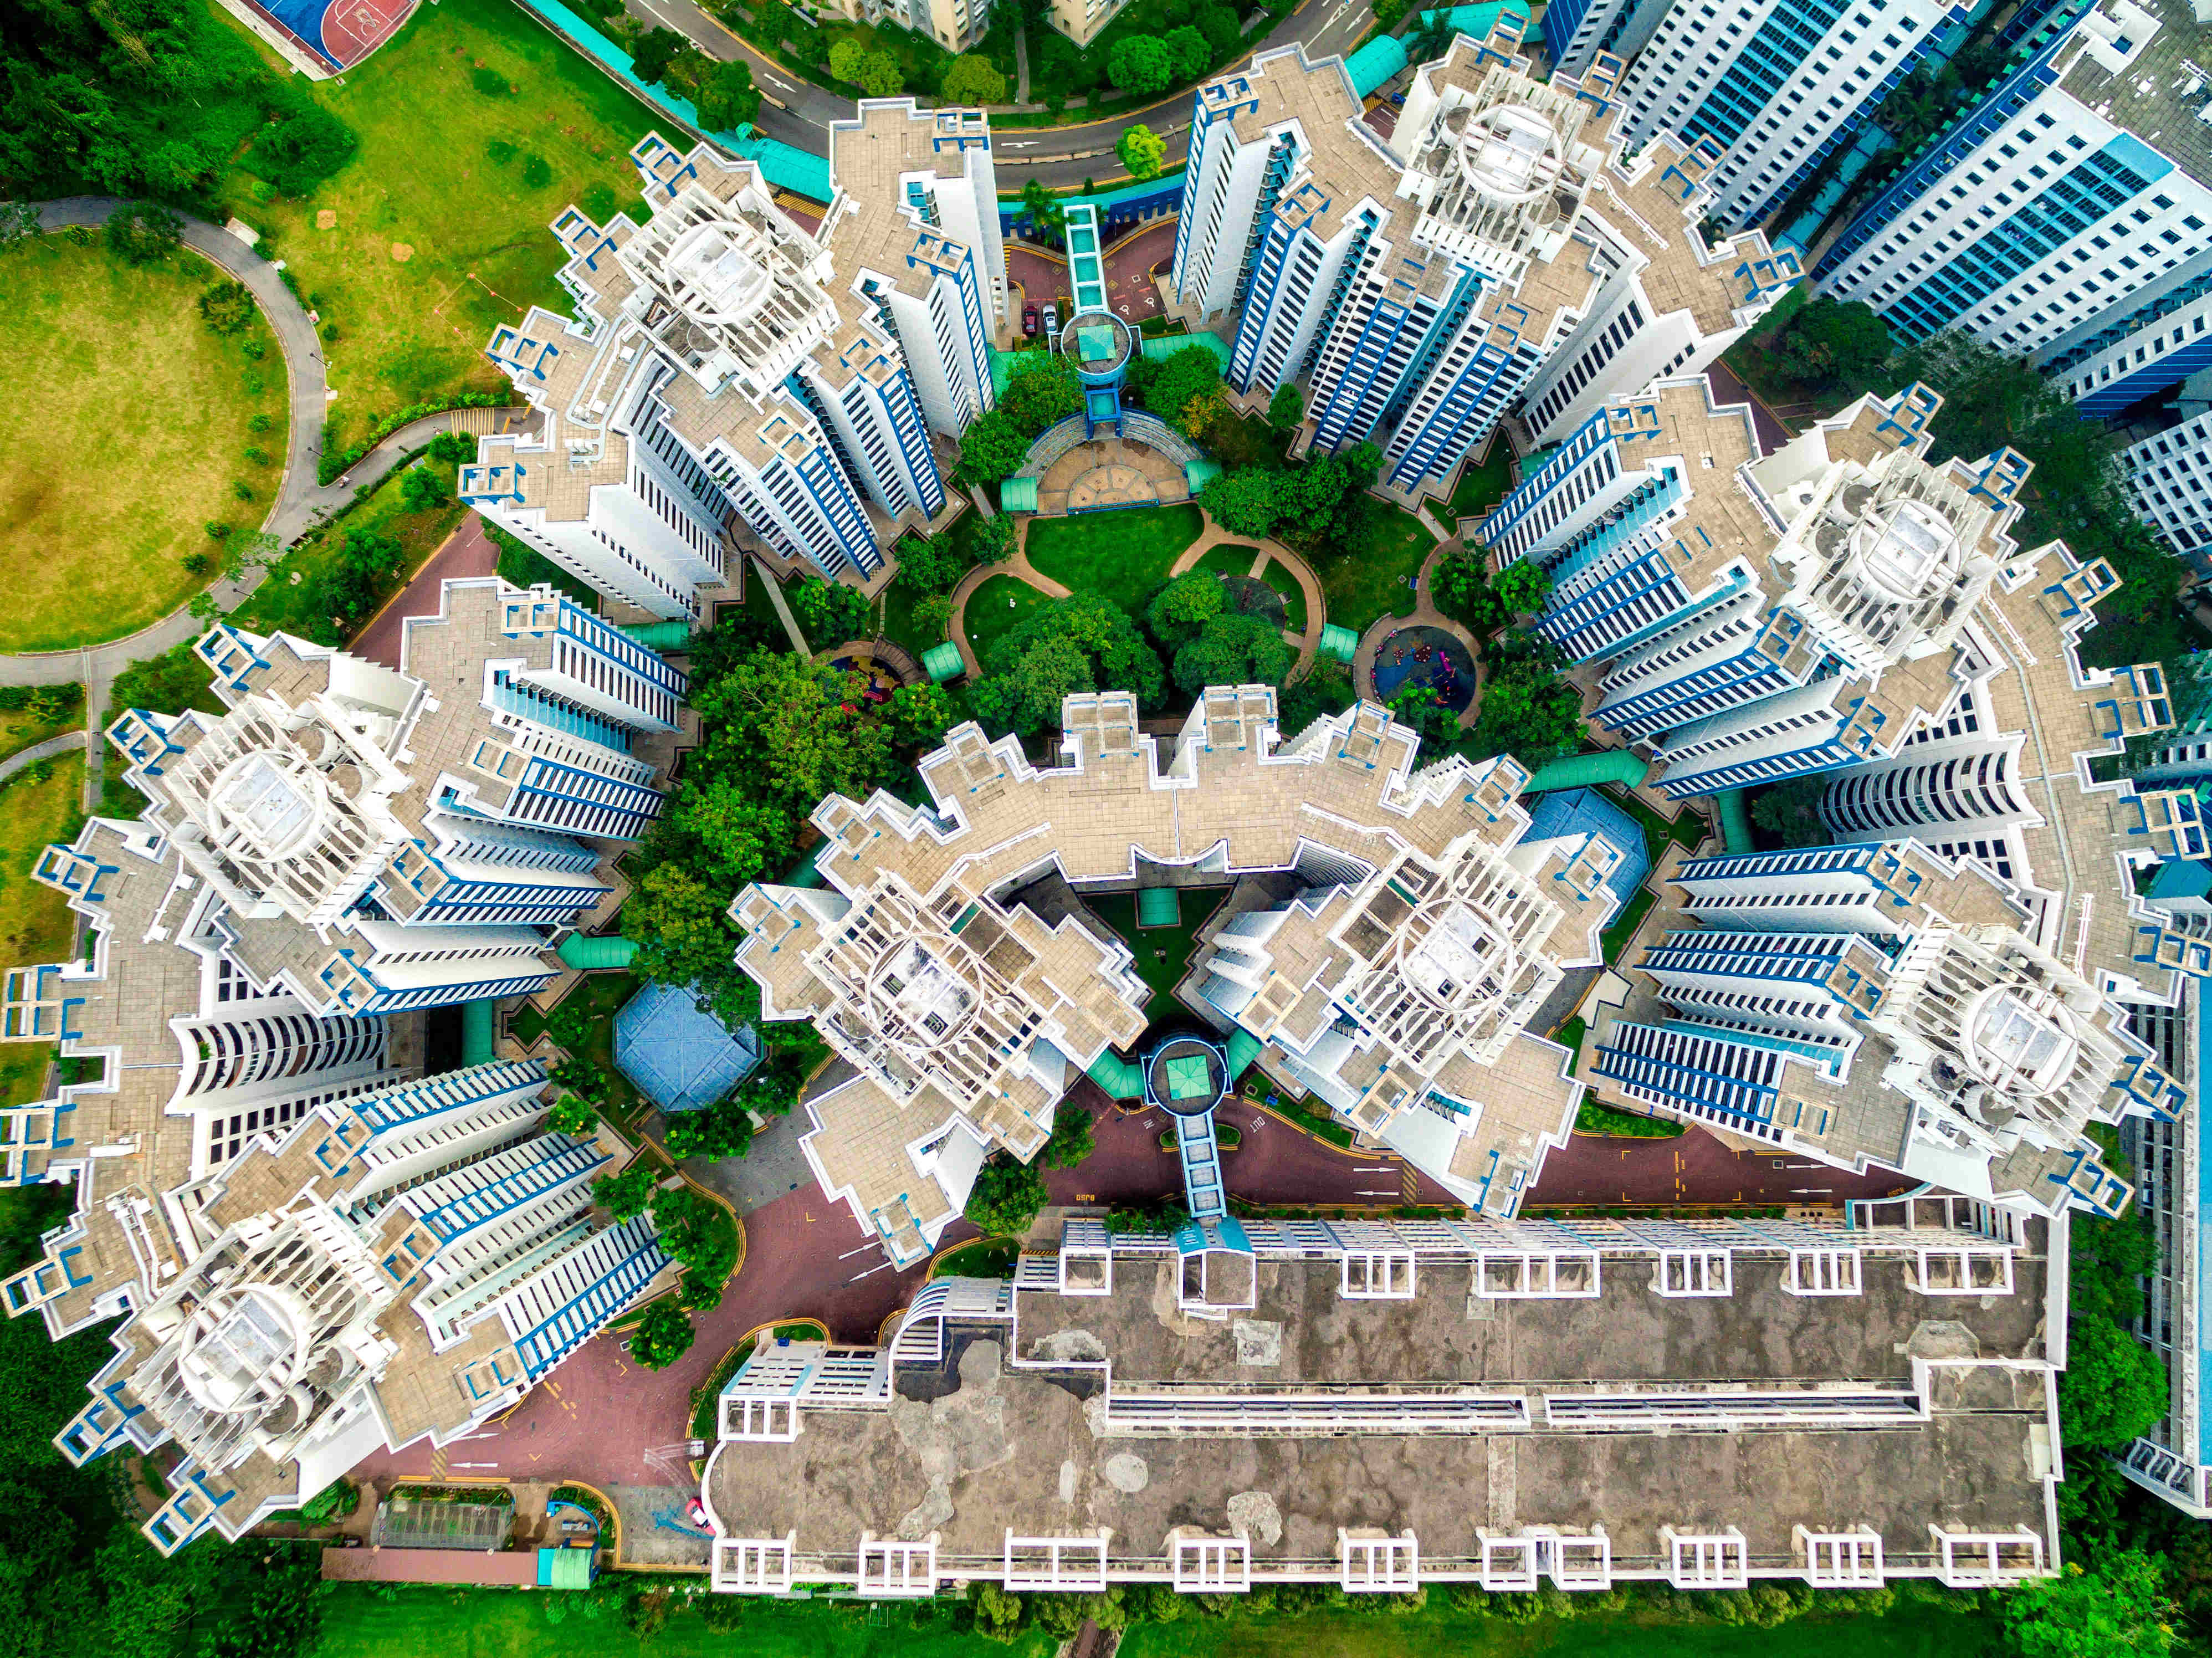 A circular formation of apartment buildings in Singapore.